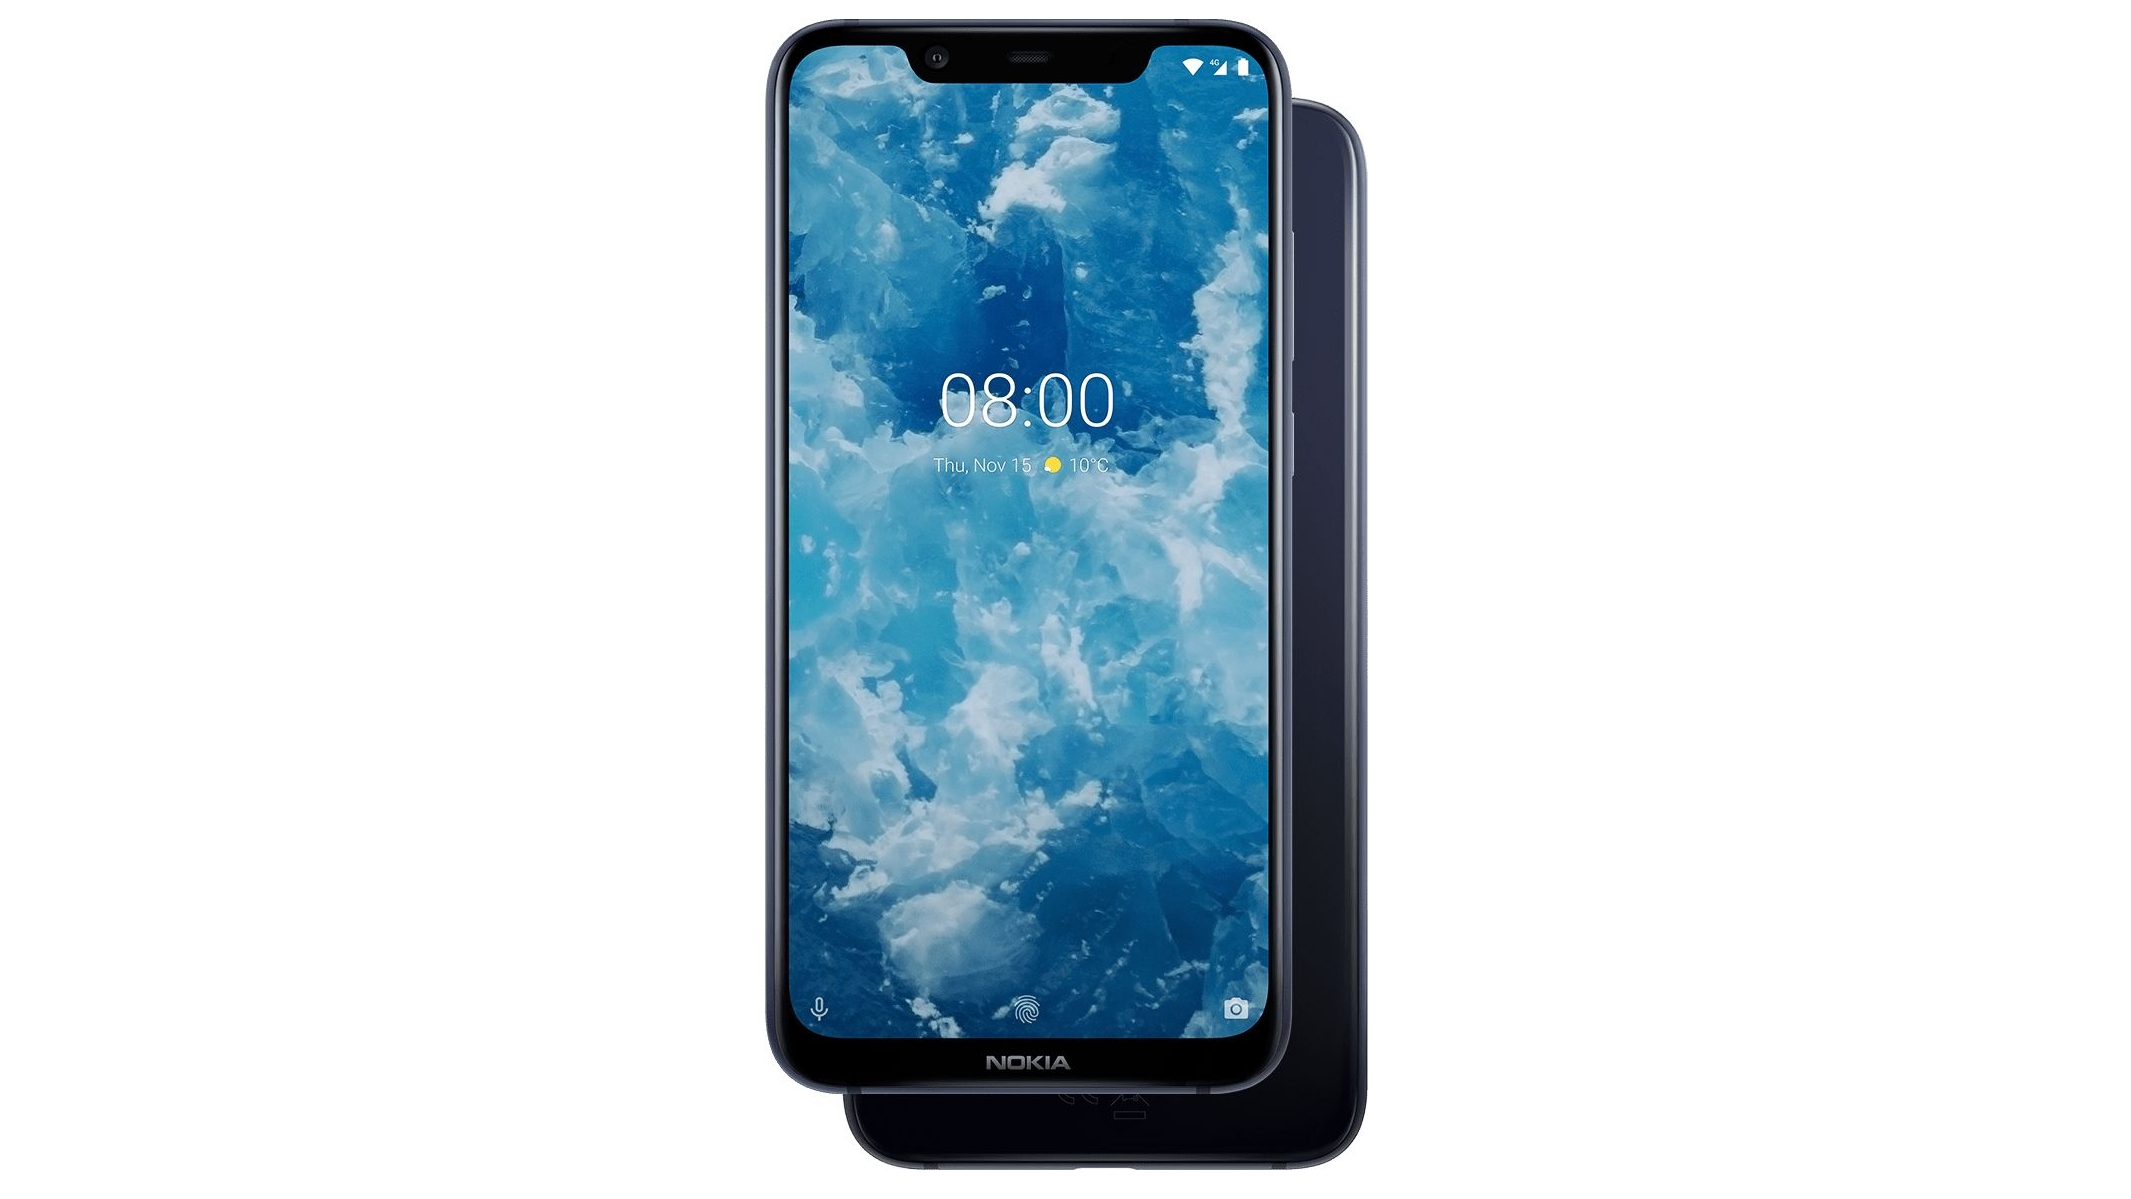 Nokia 8.1 announced with big screen and dual cameras